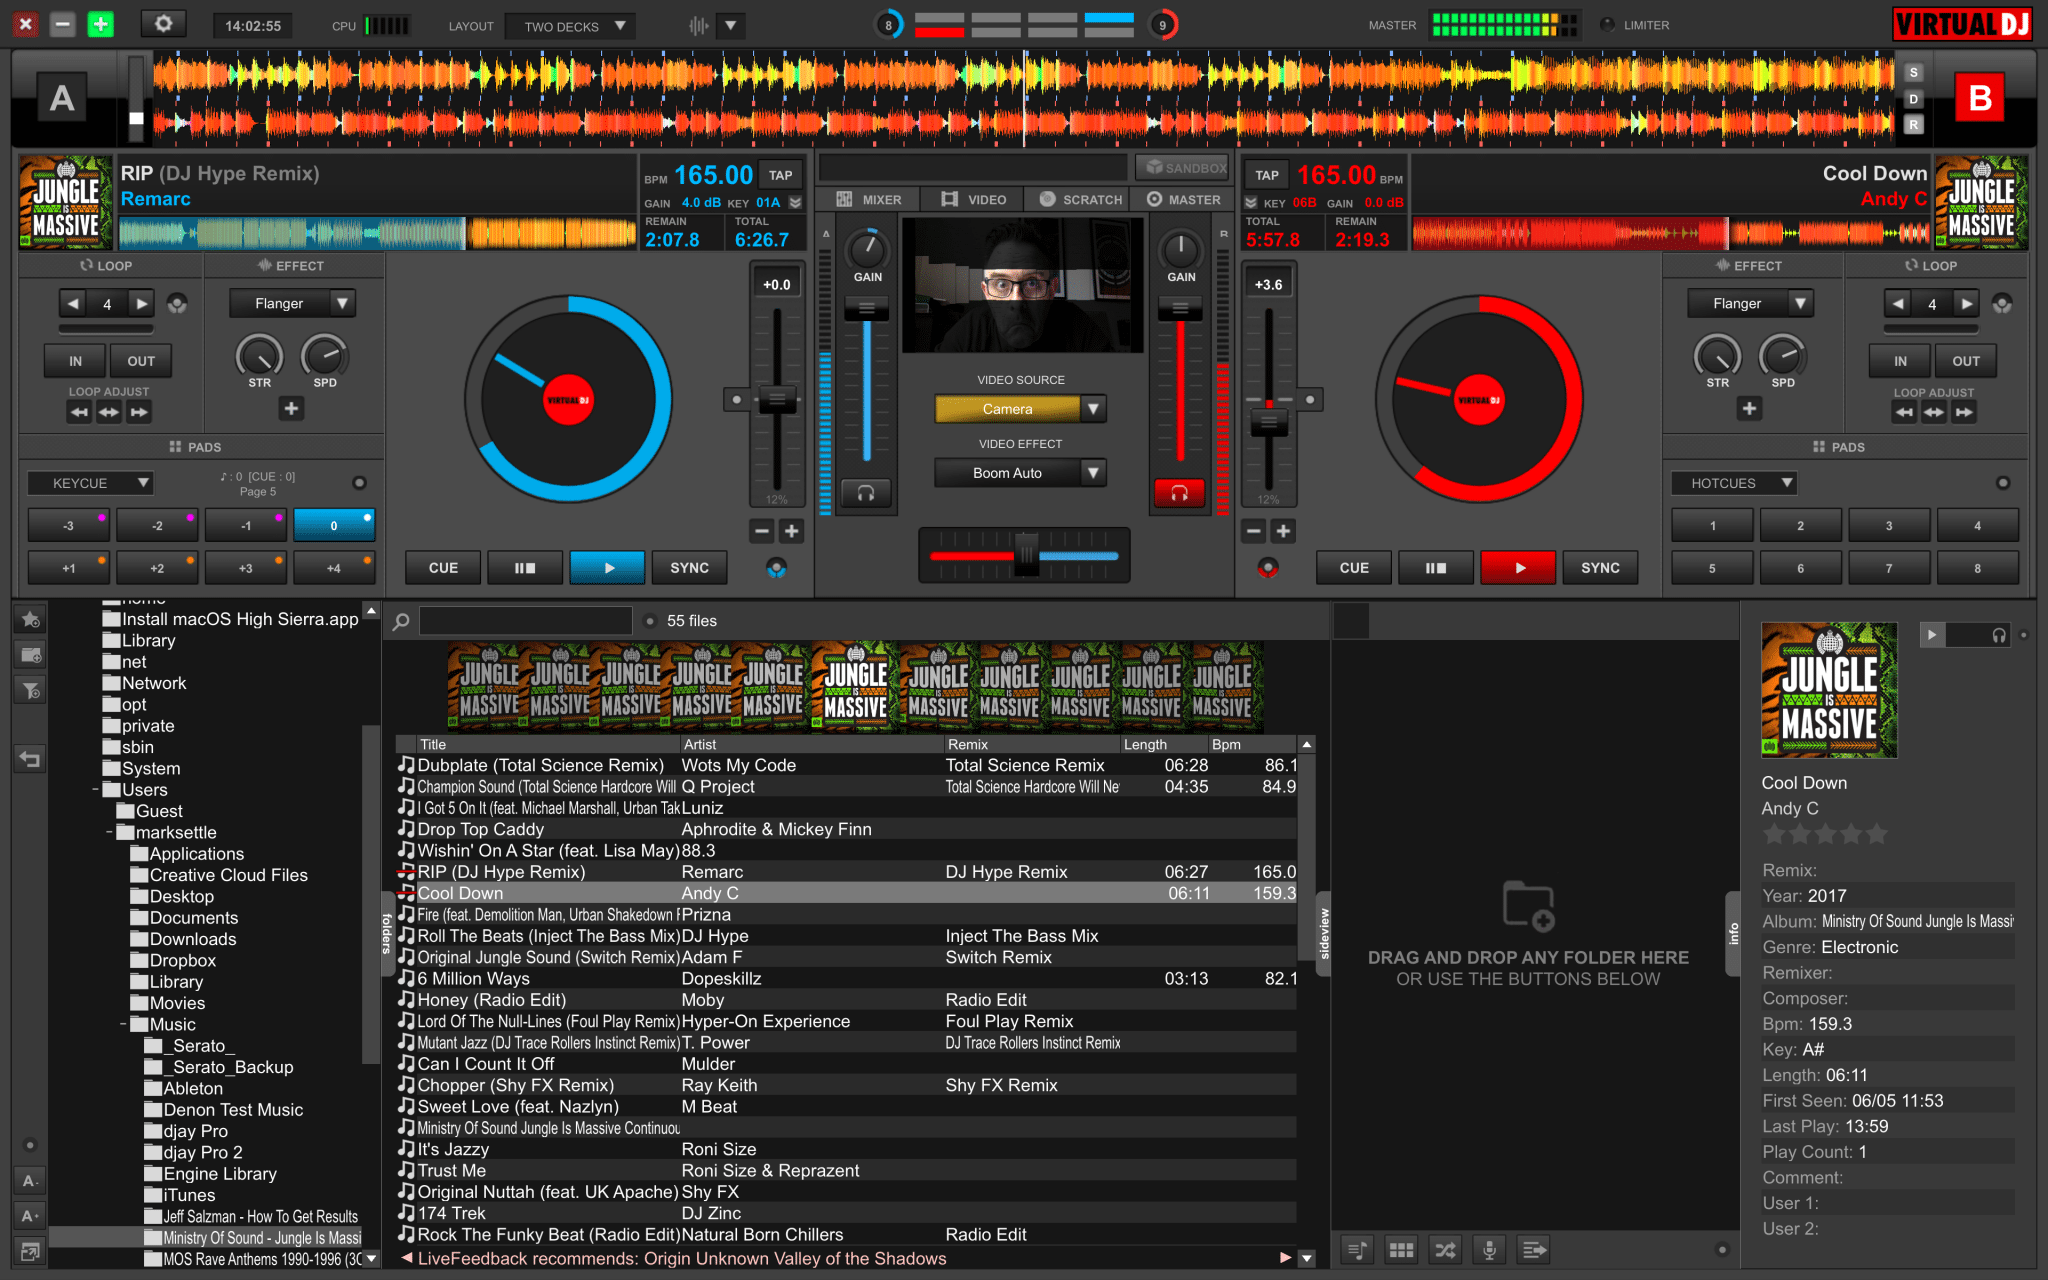 Latest Virtual DJ Software, Update Videoskins and Scratch DNA